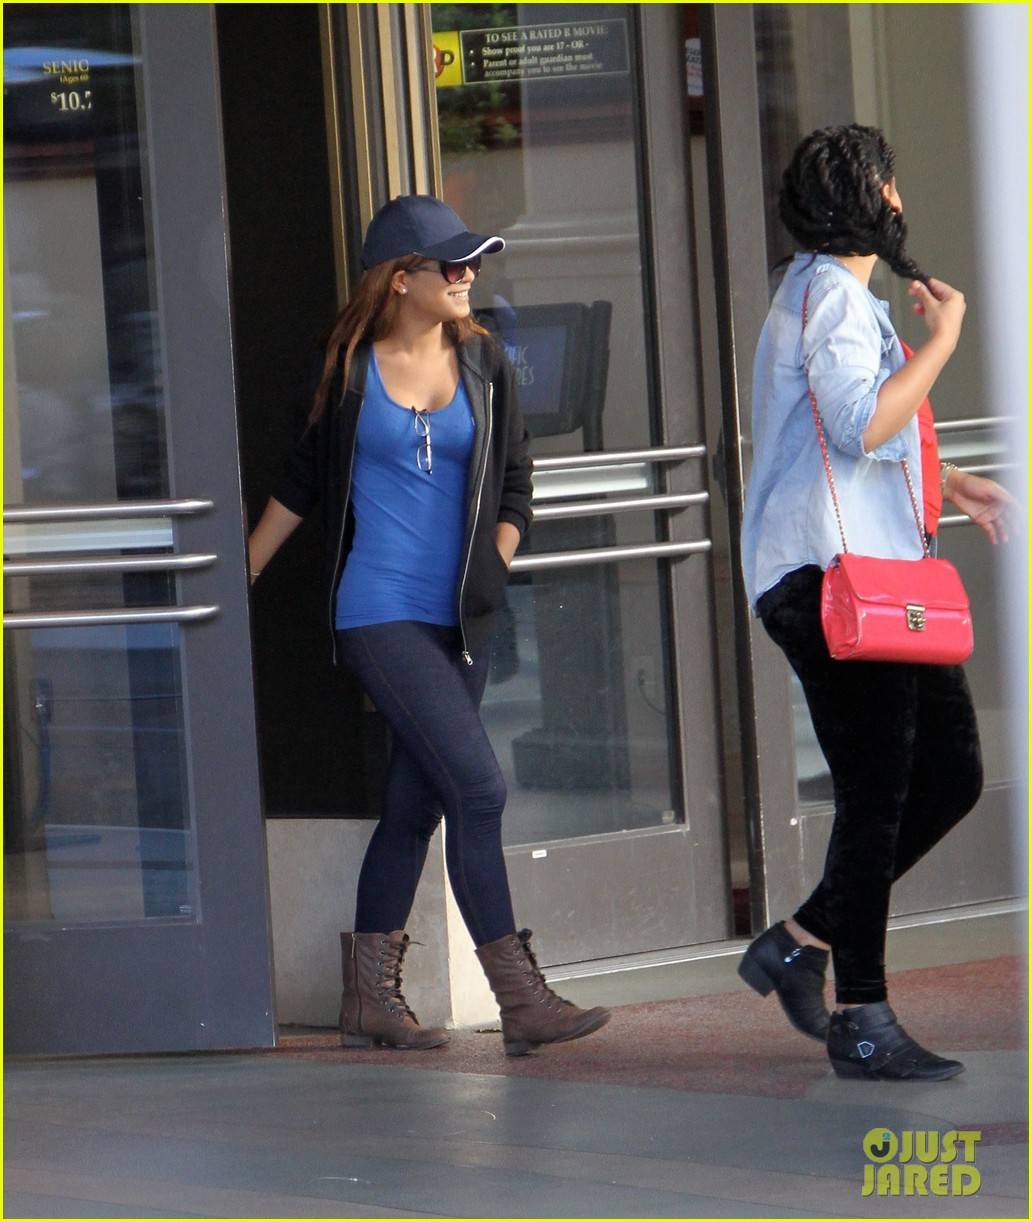 vanessa hudgens back on west coast after nyc trip 043010566